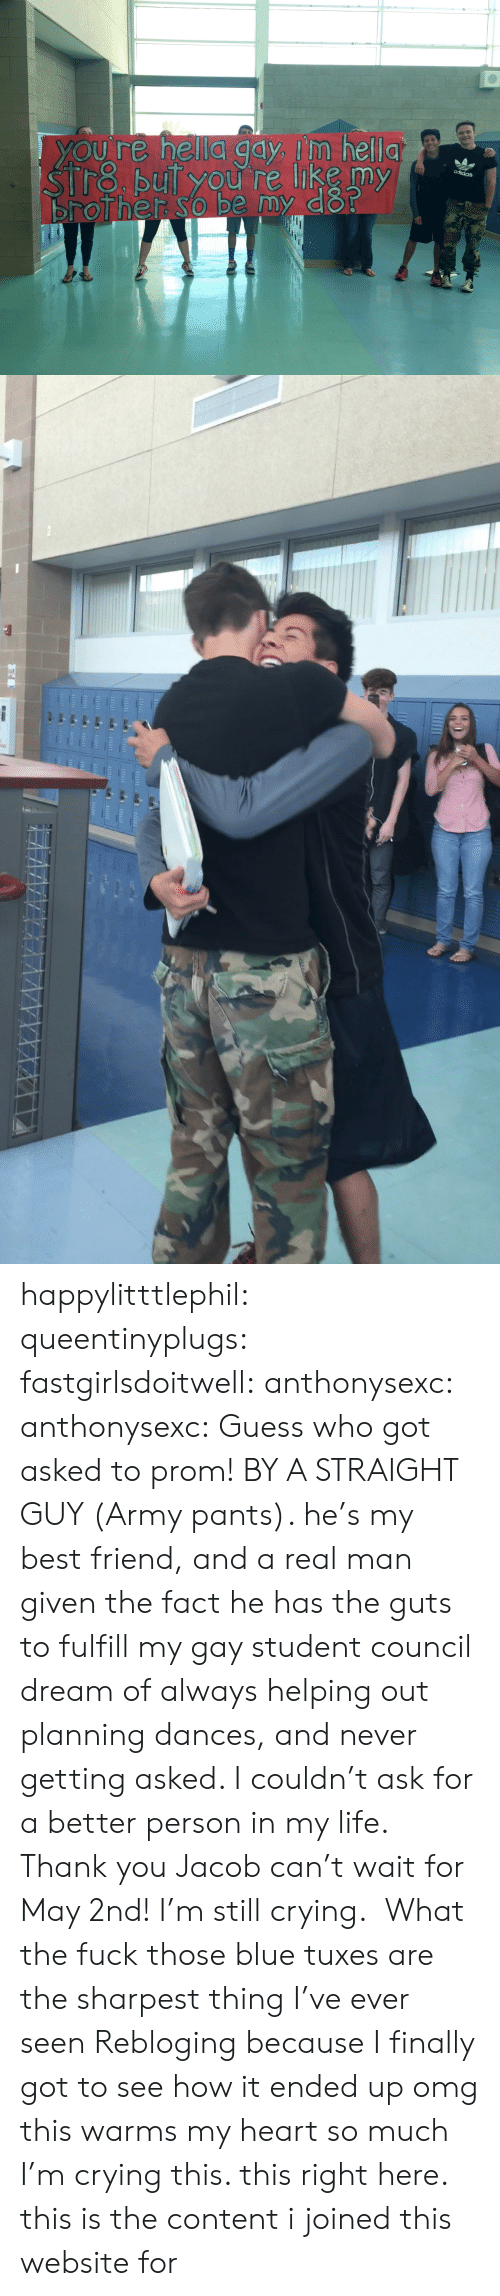 Best Friend, Crying, and Life: happylitttlephil: queentinyplugs:  fastgirlsdoitwell:  anthonysexc:  anthonysexc:  Guess who got asked to prom! BY A STRAIGHT GUY (Army pants). he's my best friend, and a real man given the fact he has the guts to fulfill my gay student council dream of always helping out planning dances, and never getting asked. I couldn't ask for a better person in my life.  Thank you Jacob can't wait for May 2nd!   I'm still crying.   What the fuck those blue tuxes are the sharpest thing I've ever seen  Rebloging because I finally got to see how it ended up omg this warms my heart so much I'm crying  this. this right here. this is the content i joined this website for